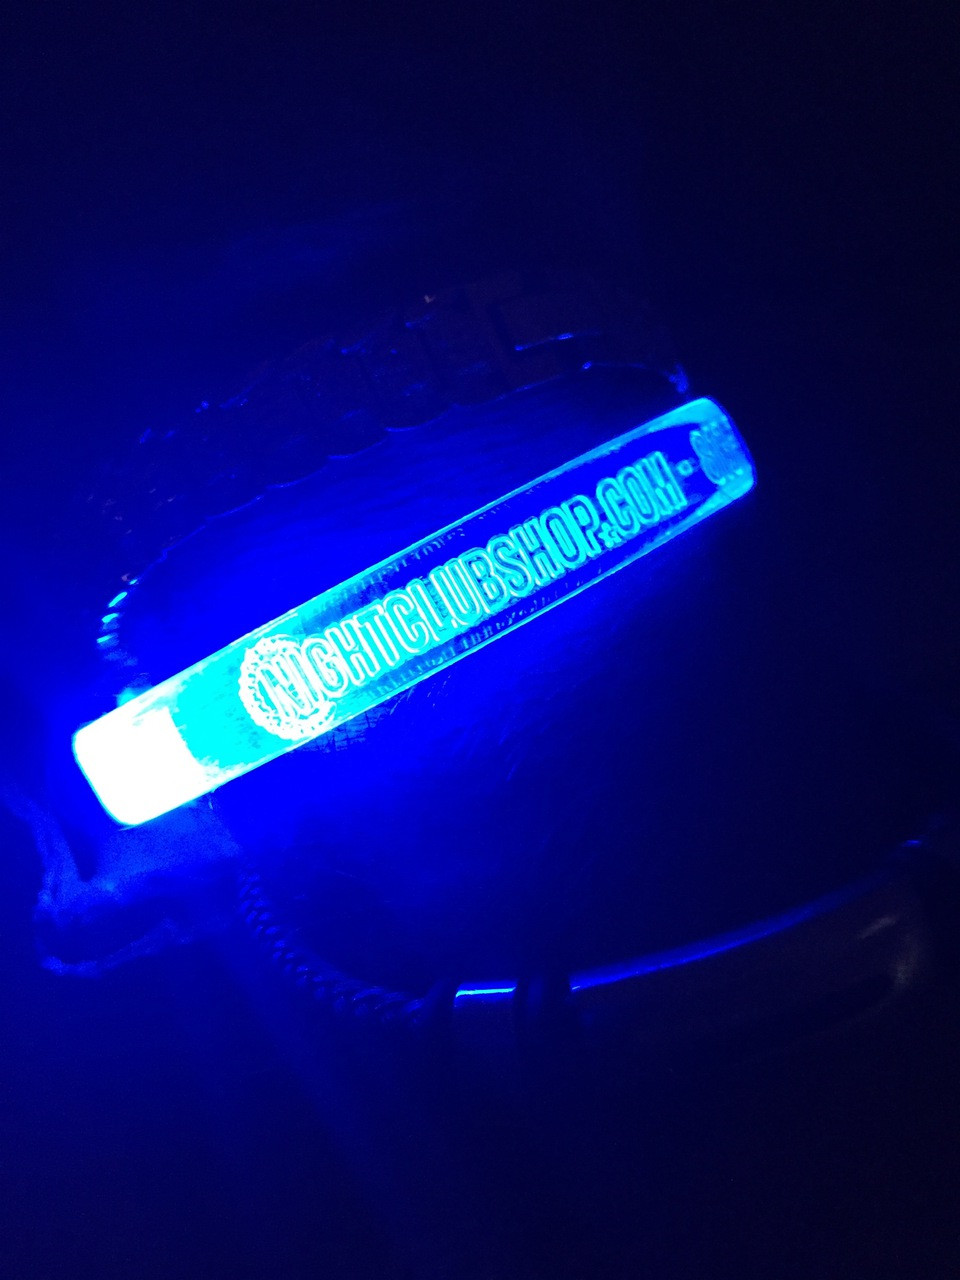 flashing, 3 mode, 3 function, LED,Custom, Print,Engraved,Wristband,Branded, Merch, promo, VIP,bracelet, Light up, LED Wristband